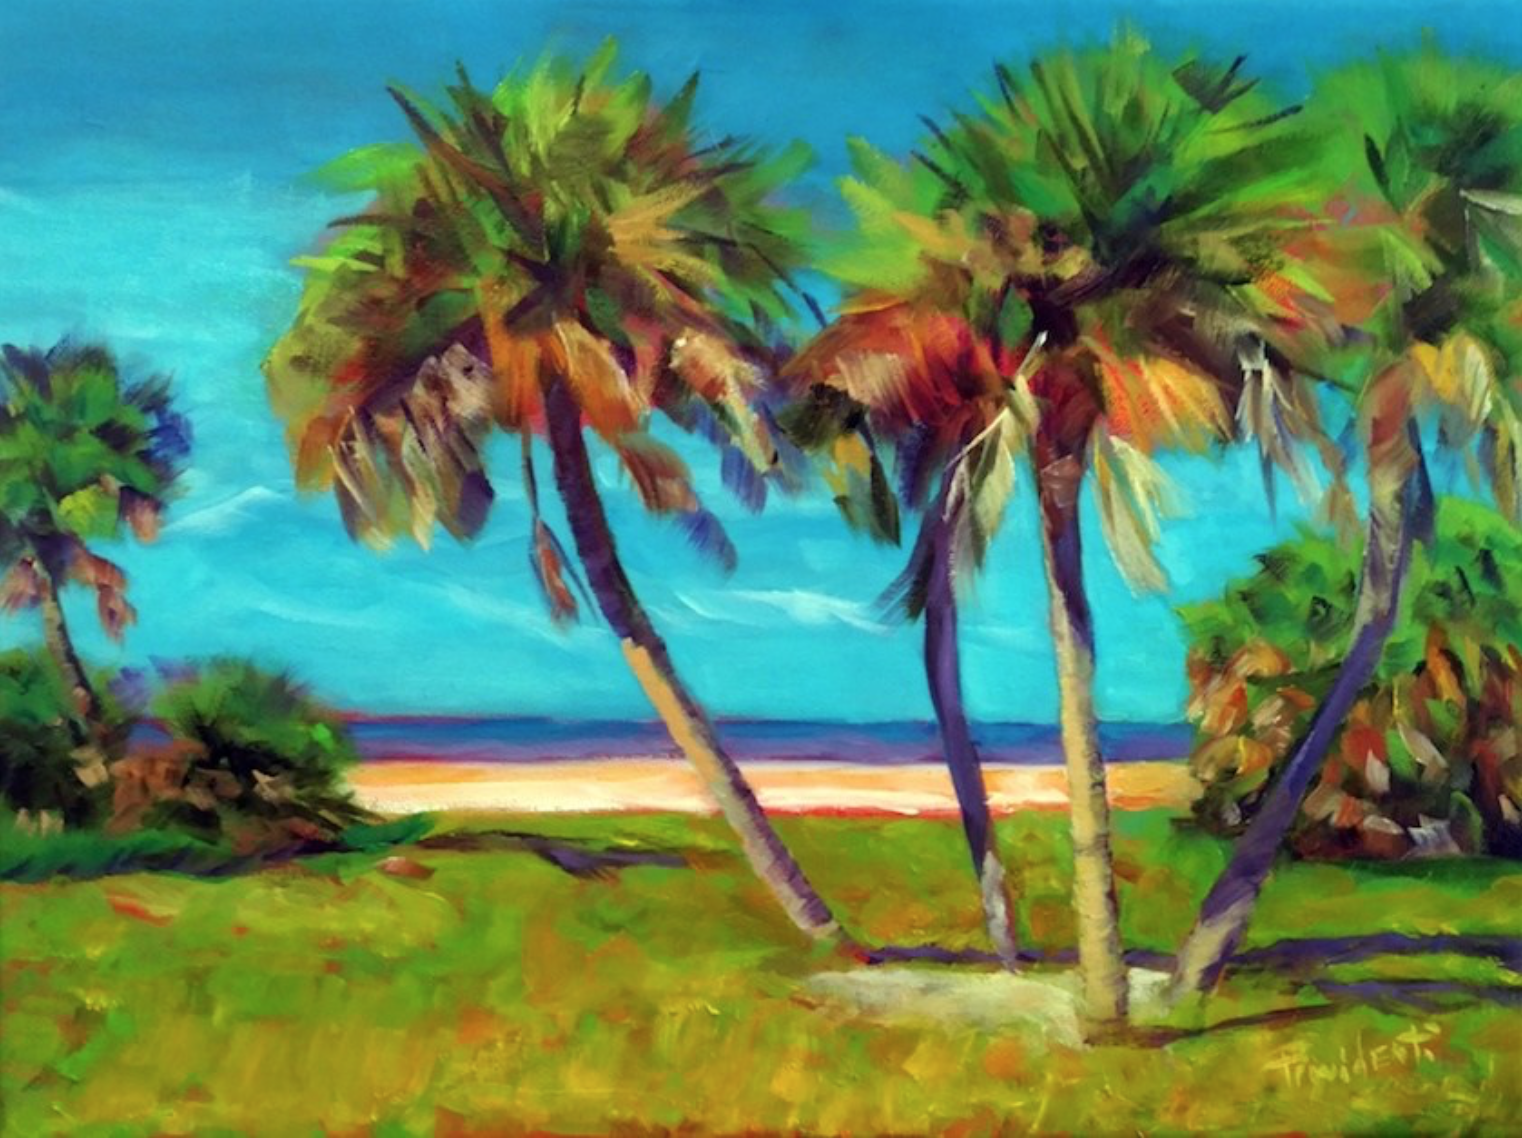 Meet this Gulfport man who says the painting changed his life